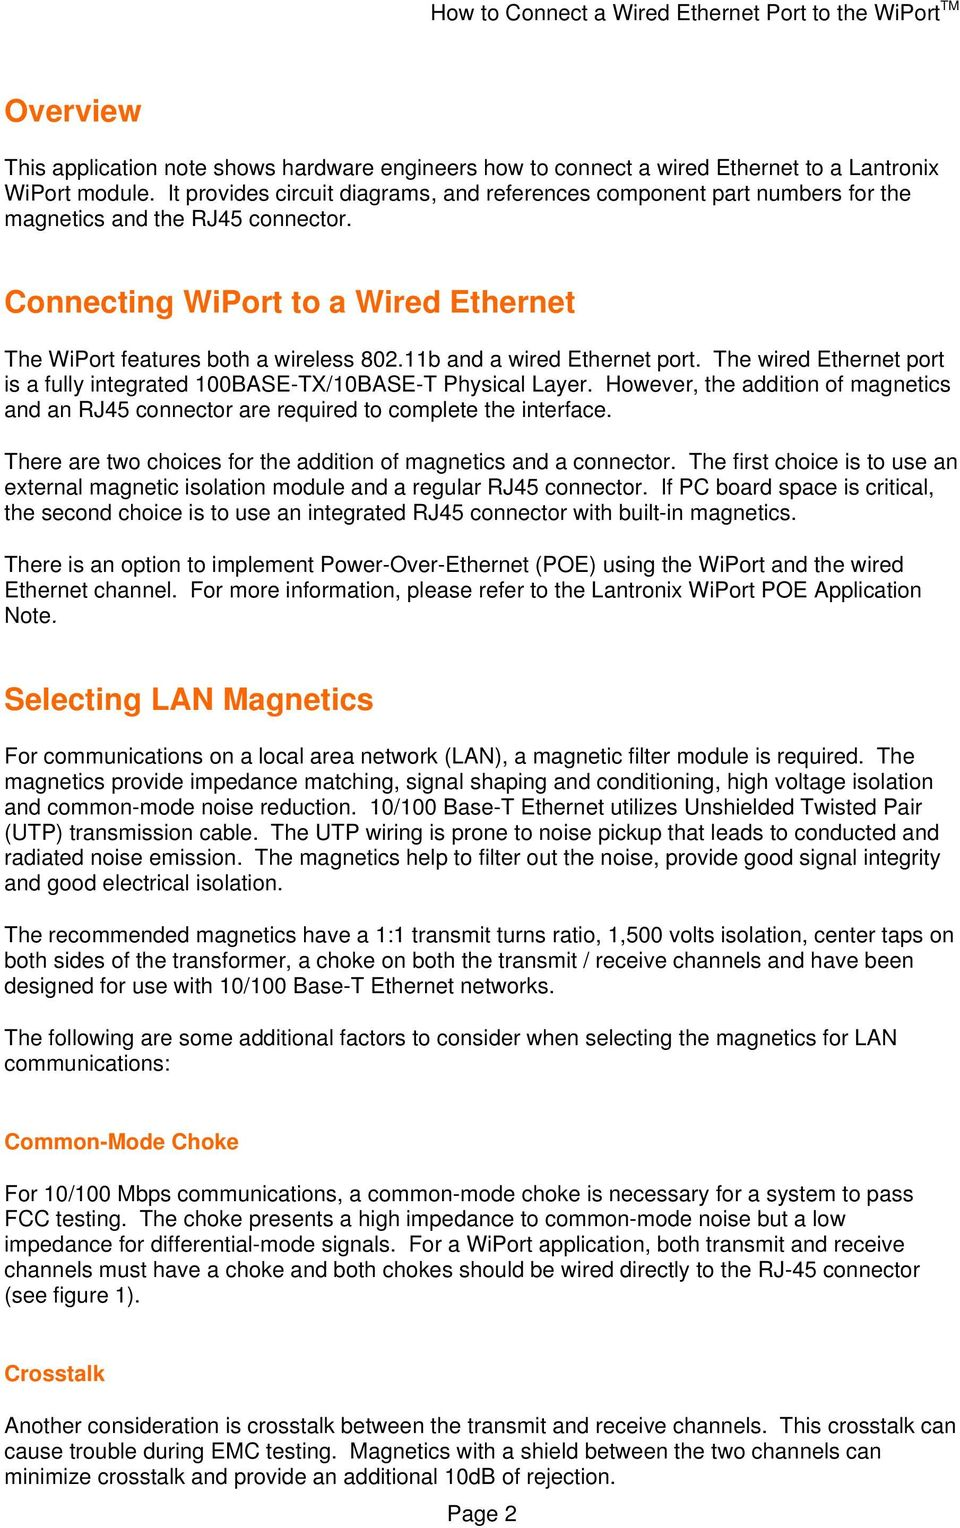 Application Note: How to Connect a Wired Ethernet Port to the WiPort ...